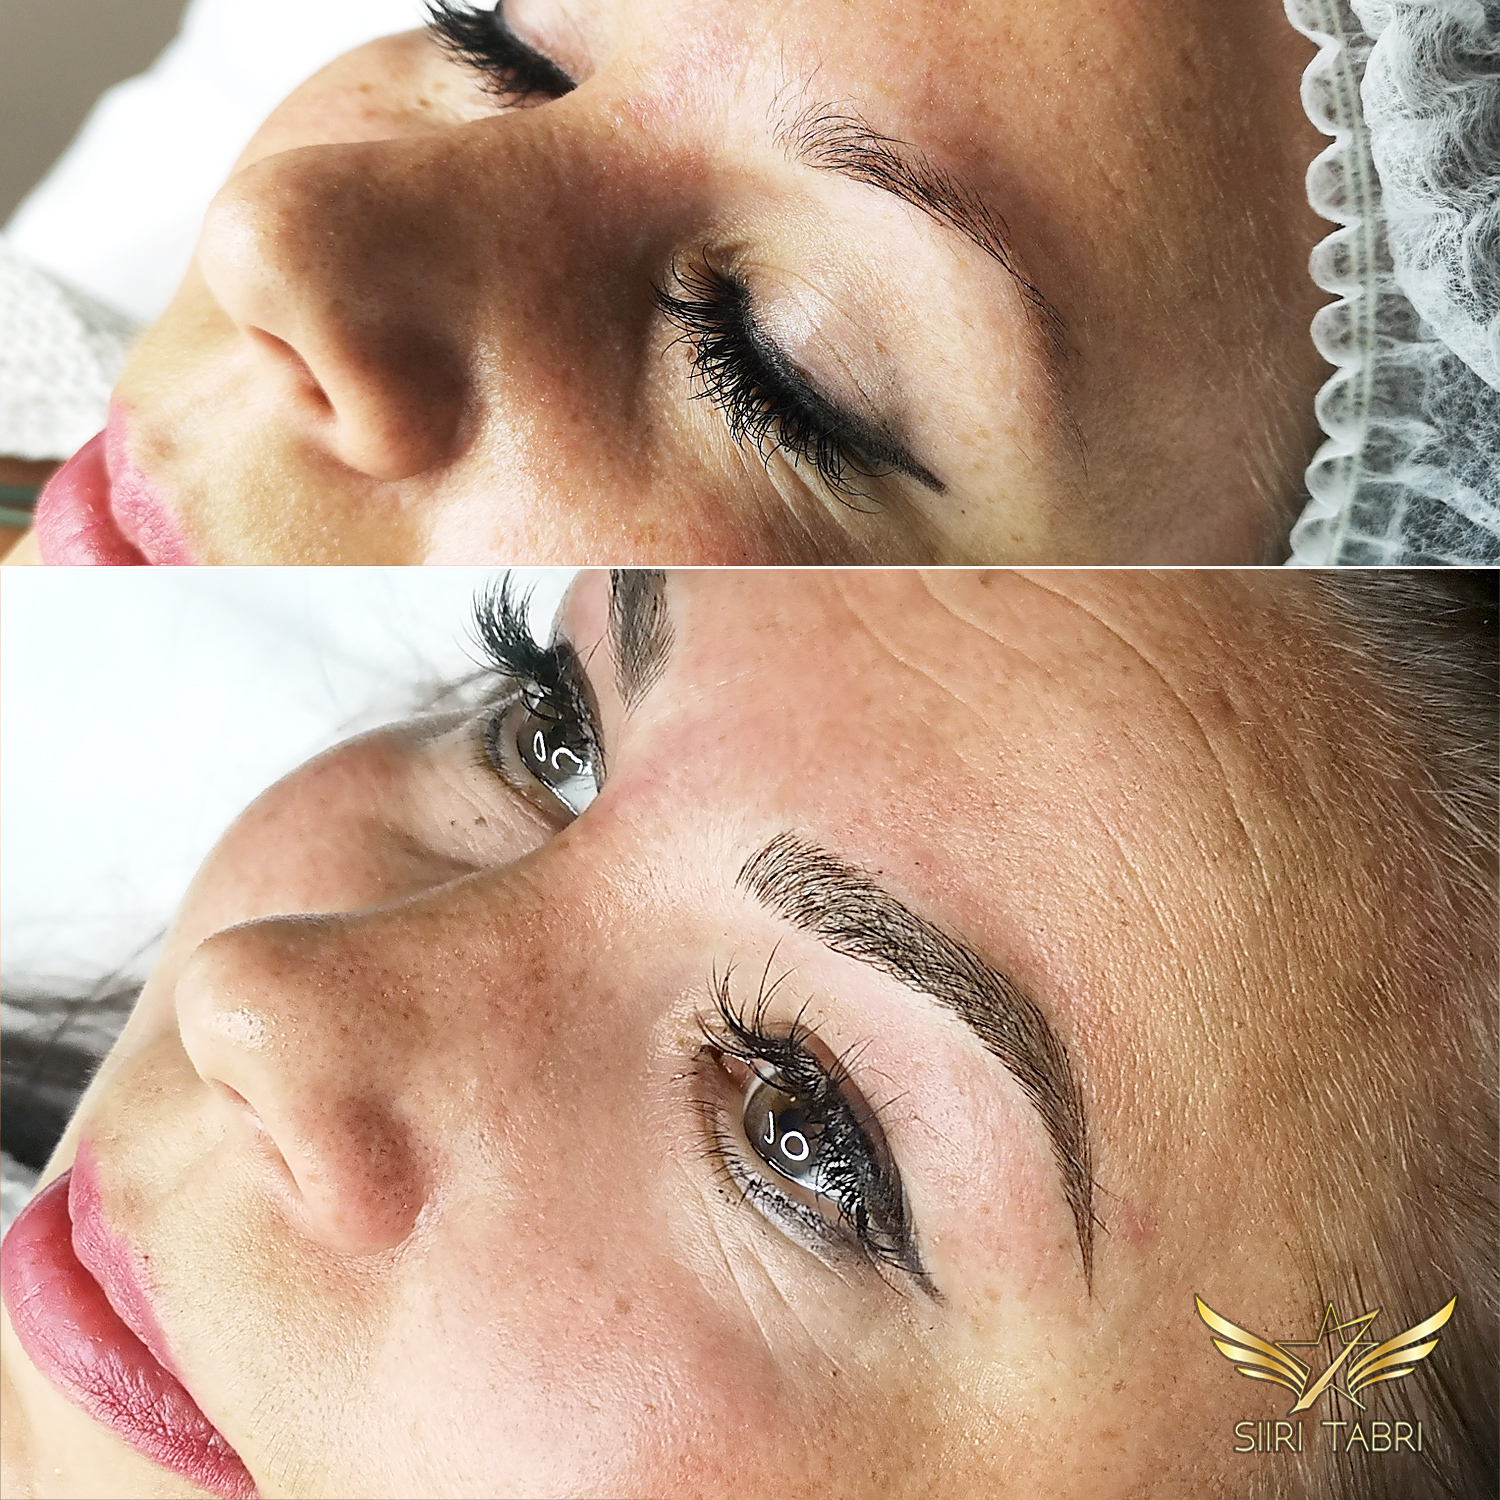 Light microblading. Sometimes a part of the brow is missing. Light microblading is the best solutions in such situations.